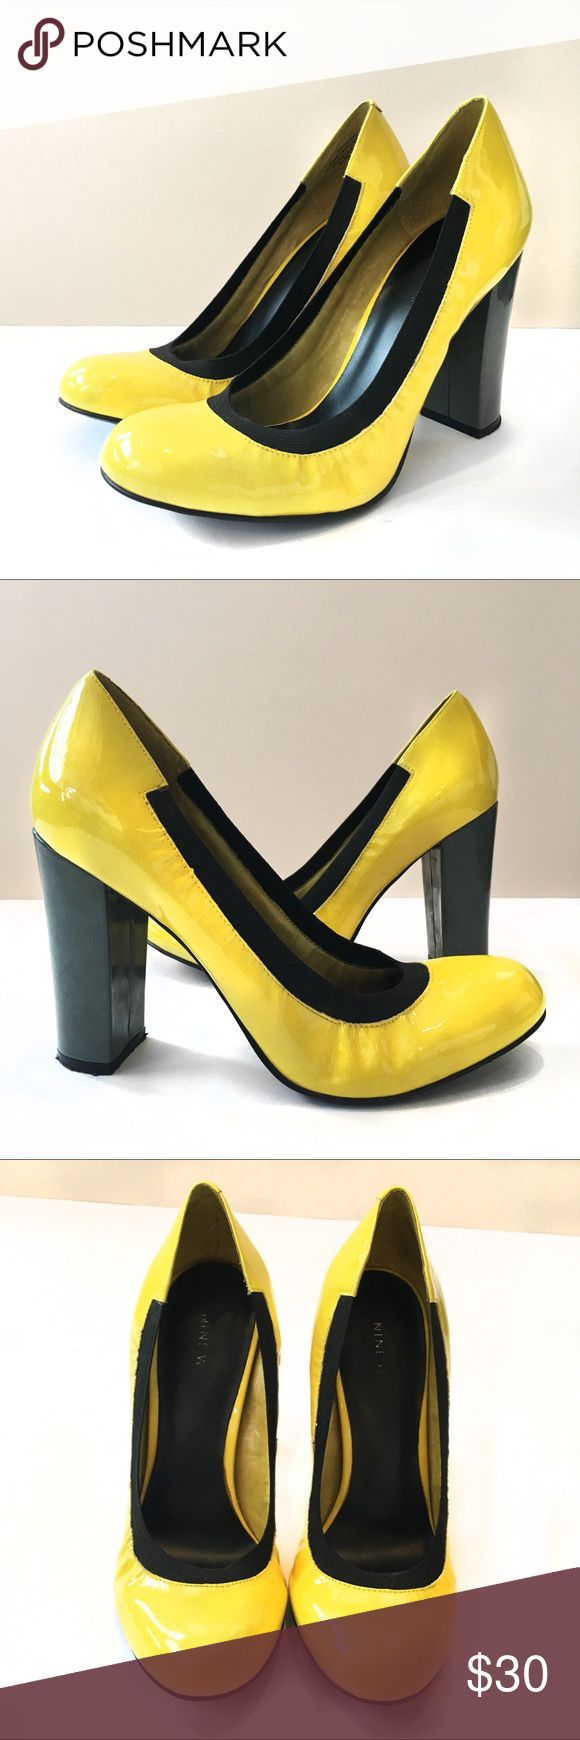 Yellow Nine West Pumps Yellow pumps with a grey chunky heel. Elastic around the side of the shoe for a perfect fit! Great condition! 🌸 Nine West Shoes Heels